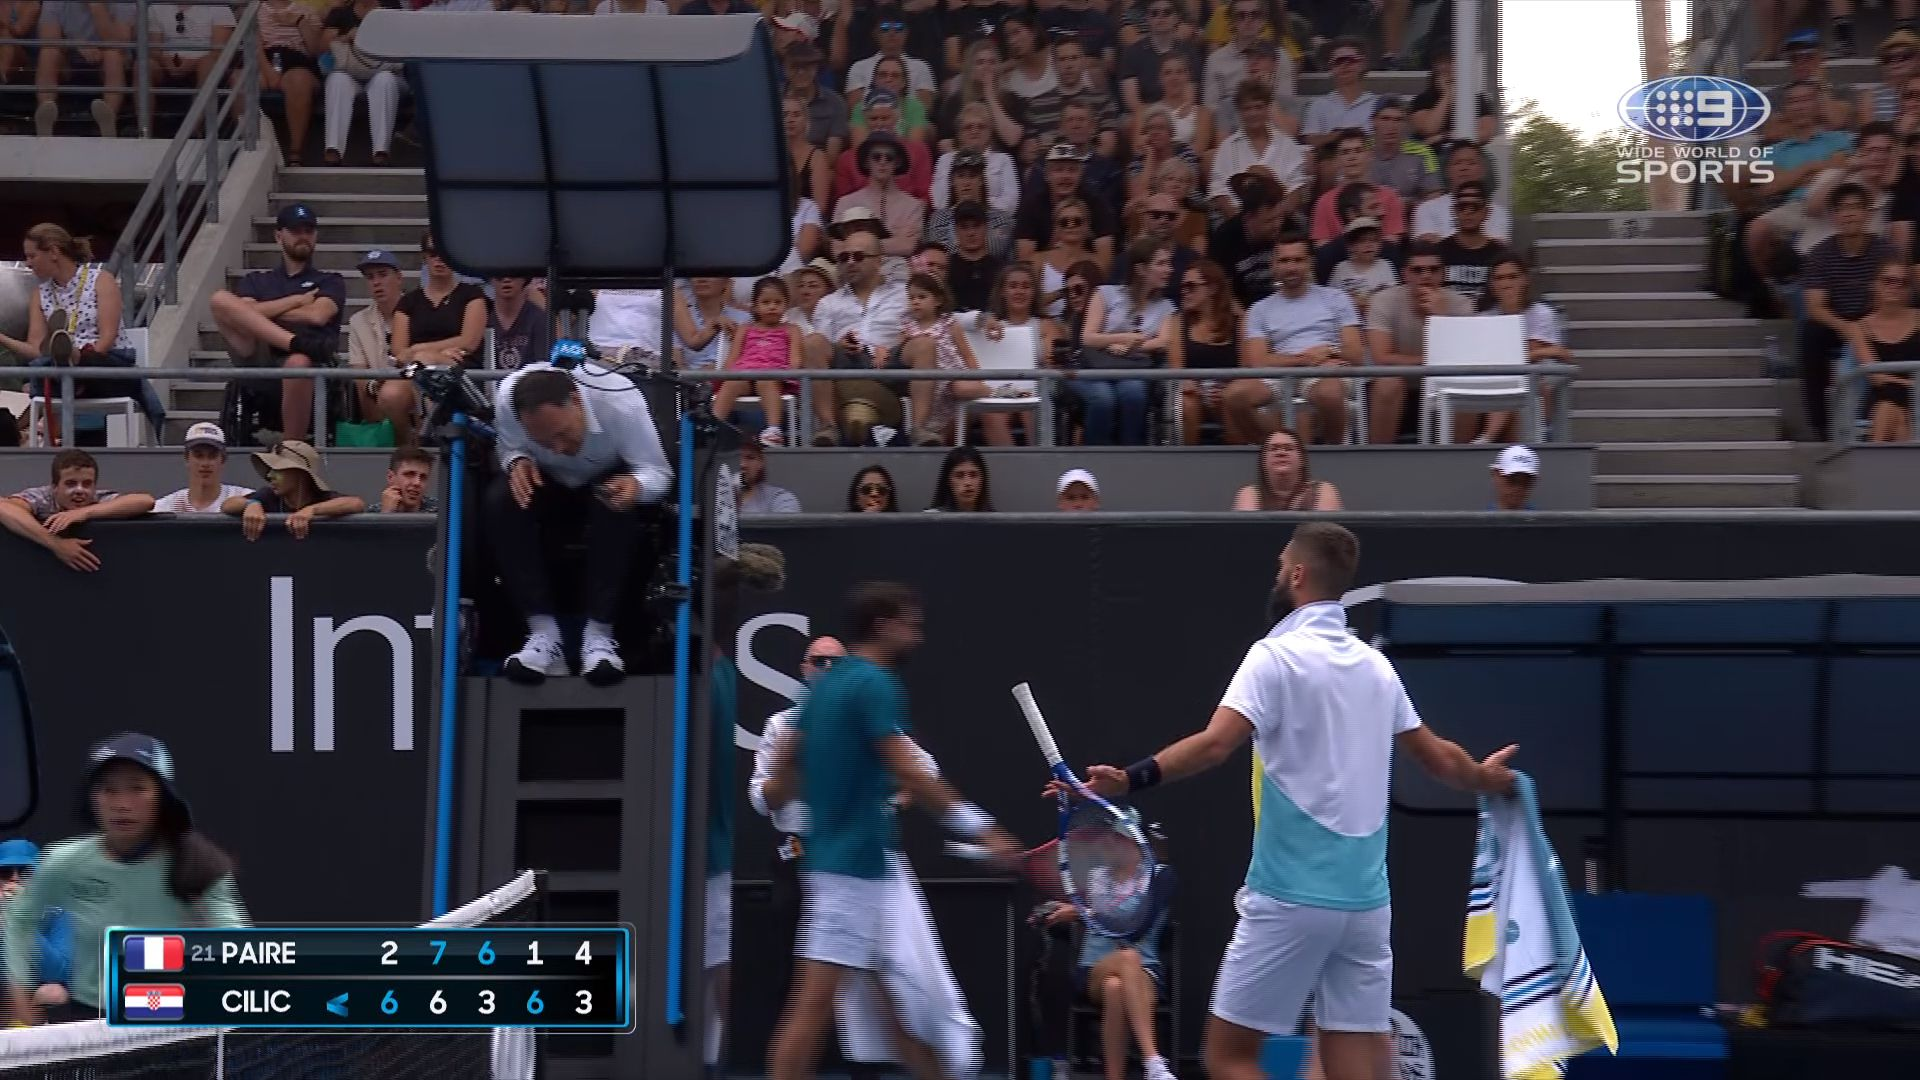 Benoit Paire's crowd taunt backfires in spectacular fashion in fifth-set tiebreak choke against Marin Cilic